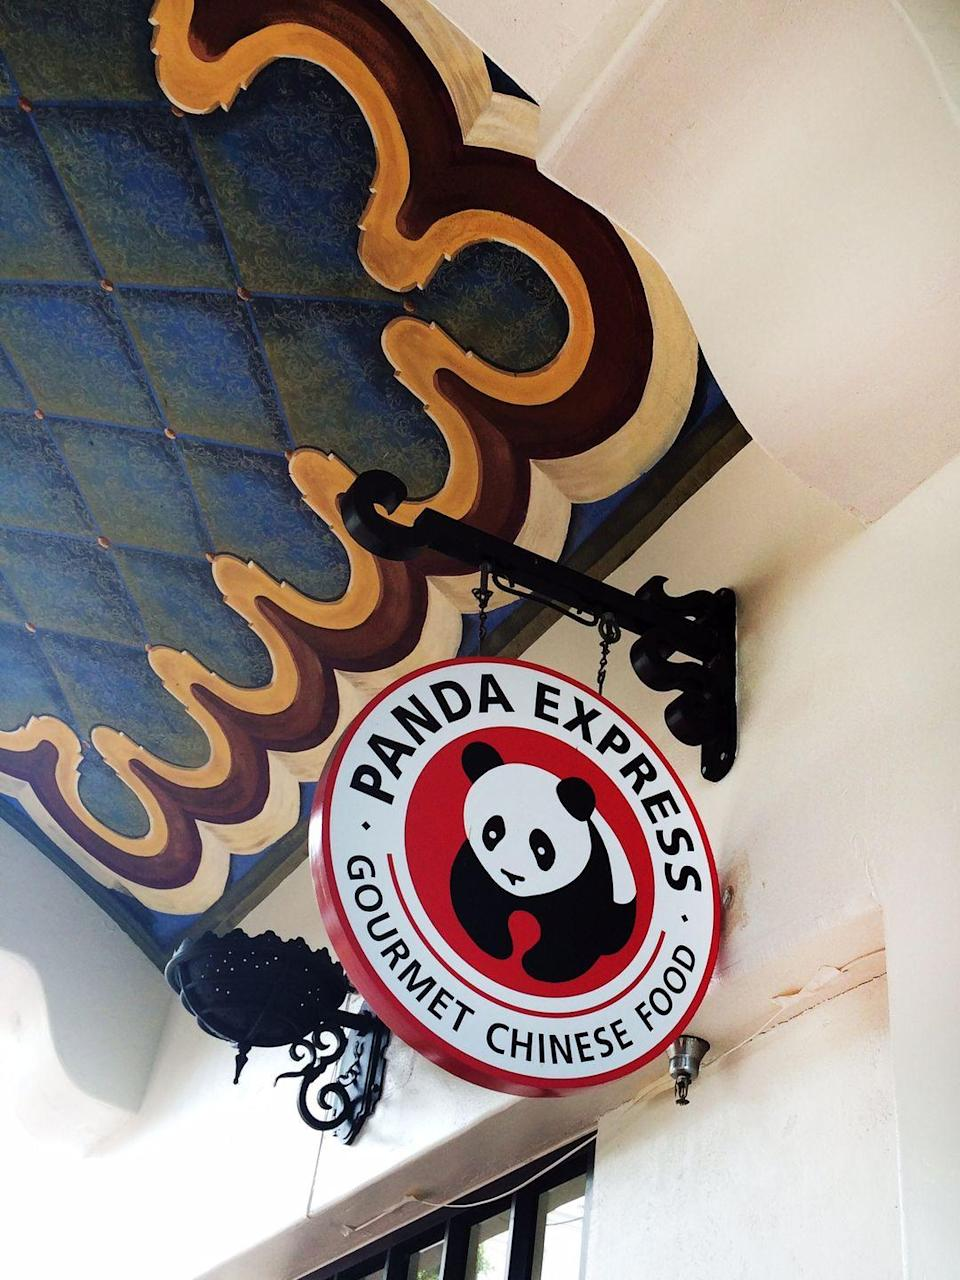 "<p>If Chinese food is your Christmas Day tradition, head to Panda Express to get your fix. The chain has always been open on Christmas Day in the past, but their <a href=""https://pandaexpresshours.com/"" rel=""nofollow noopener"" target=""_blank"" data-ylk=""slk:website"" class=""link rapid-noclick-resp"">website</a> recommends checking your local store's hours first since some locations are closed.</p>"